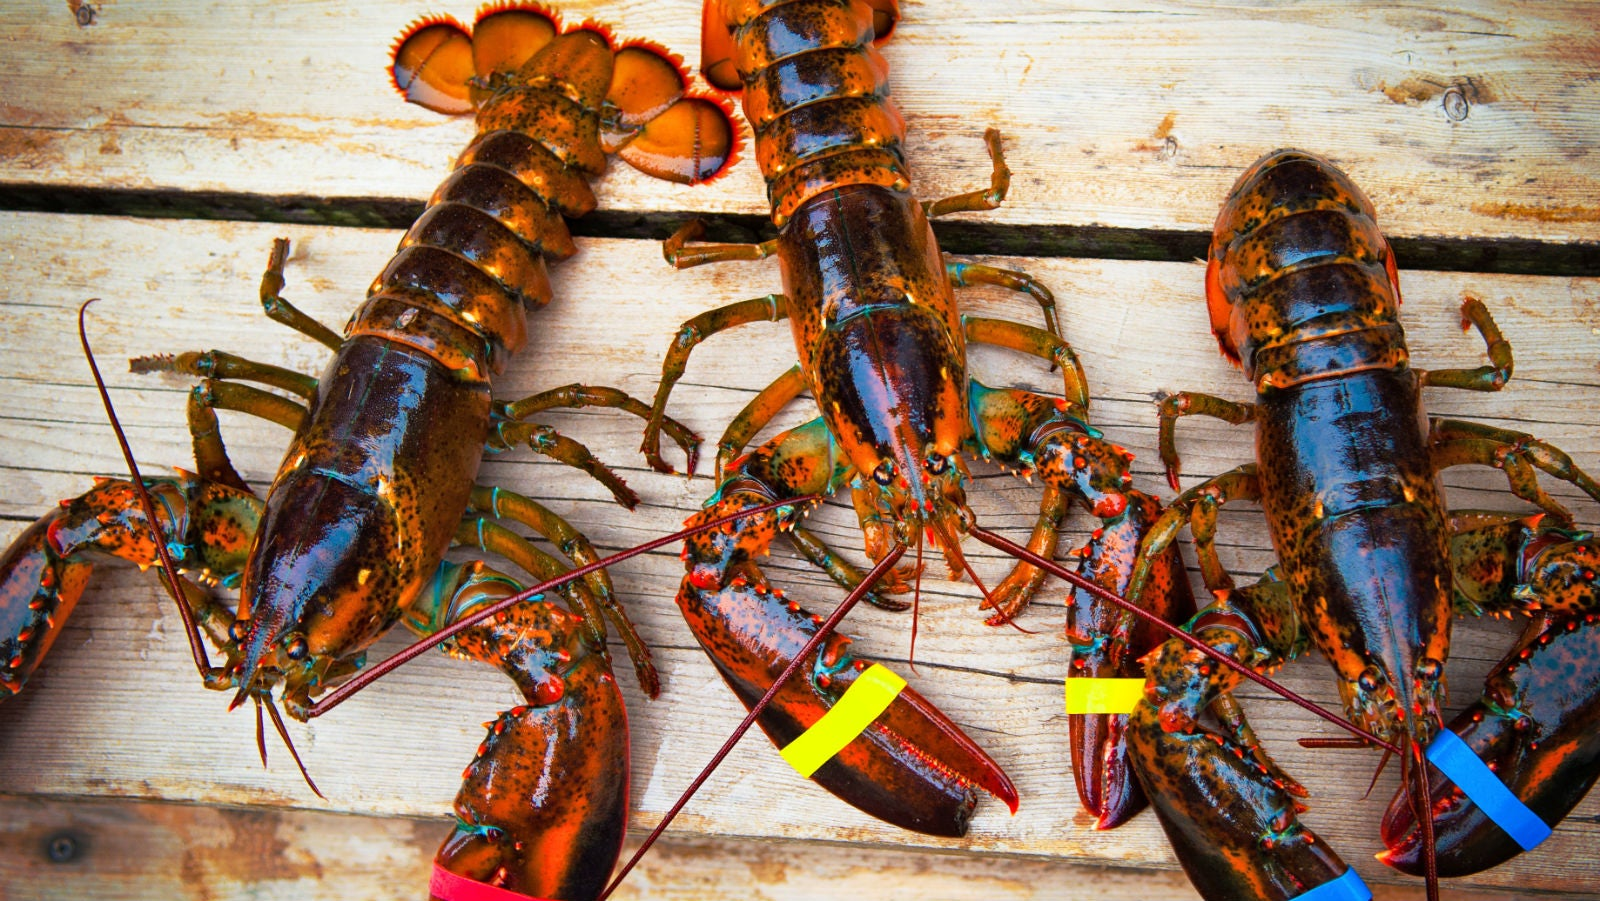 Lobsters Were Once Only Fed To Poor People And Prisoners